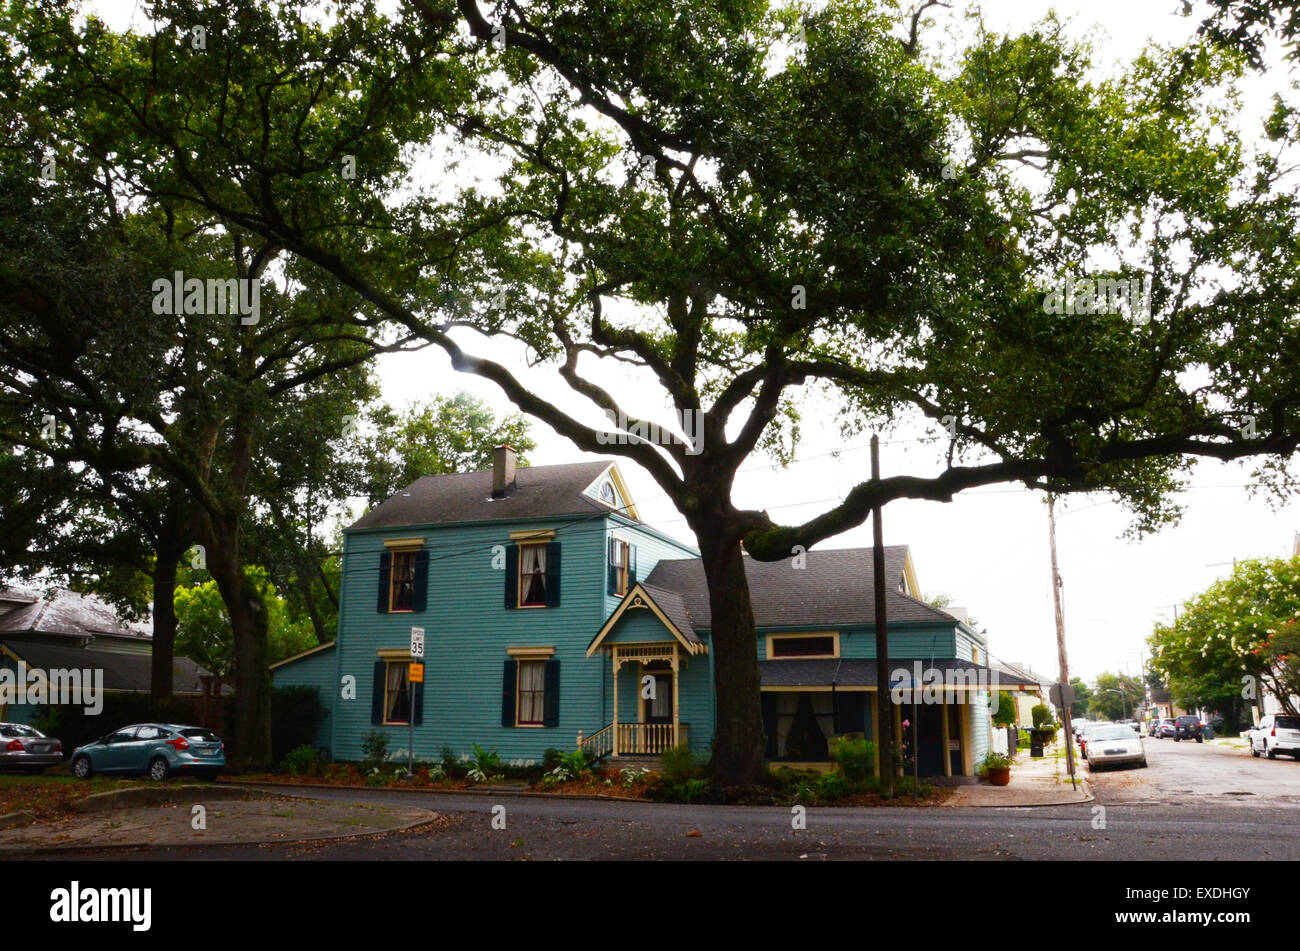 algiers new orleans houses louisiana - Stock Image